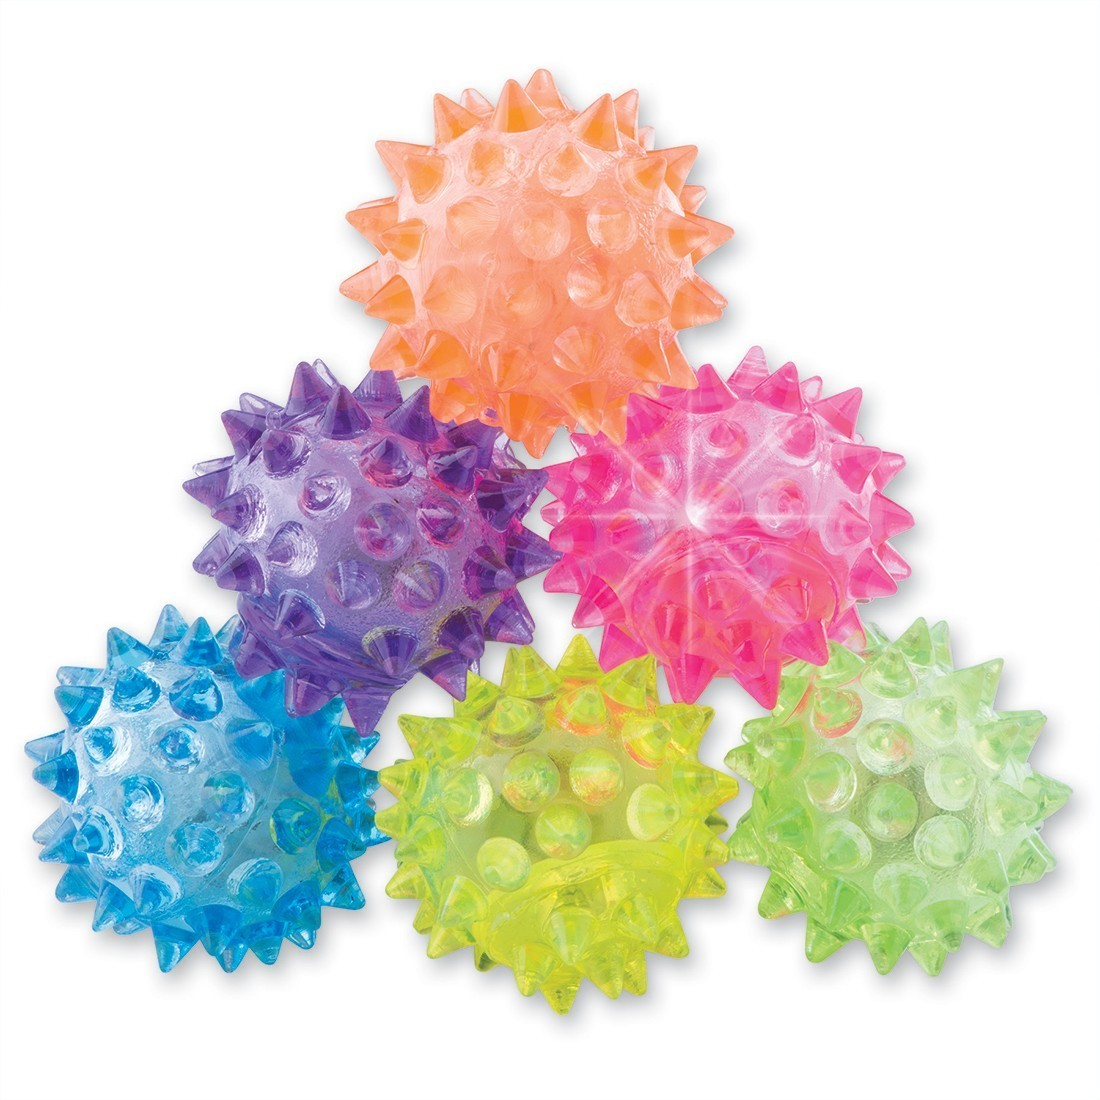 35mm Light Up Spike Bouncing Balls [image]